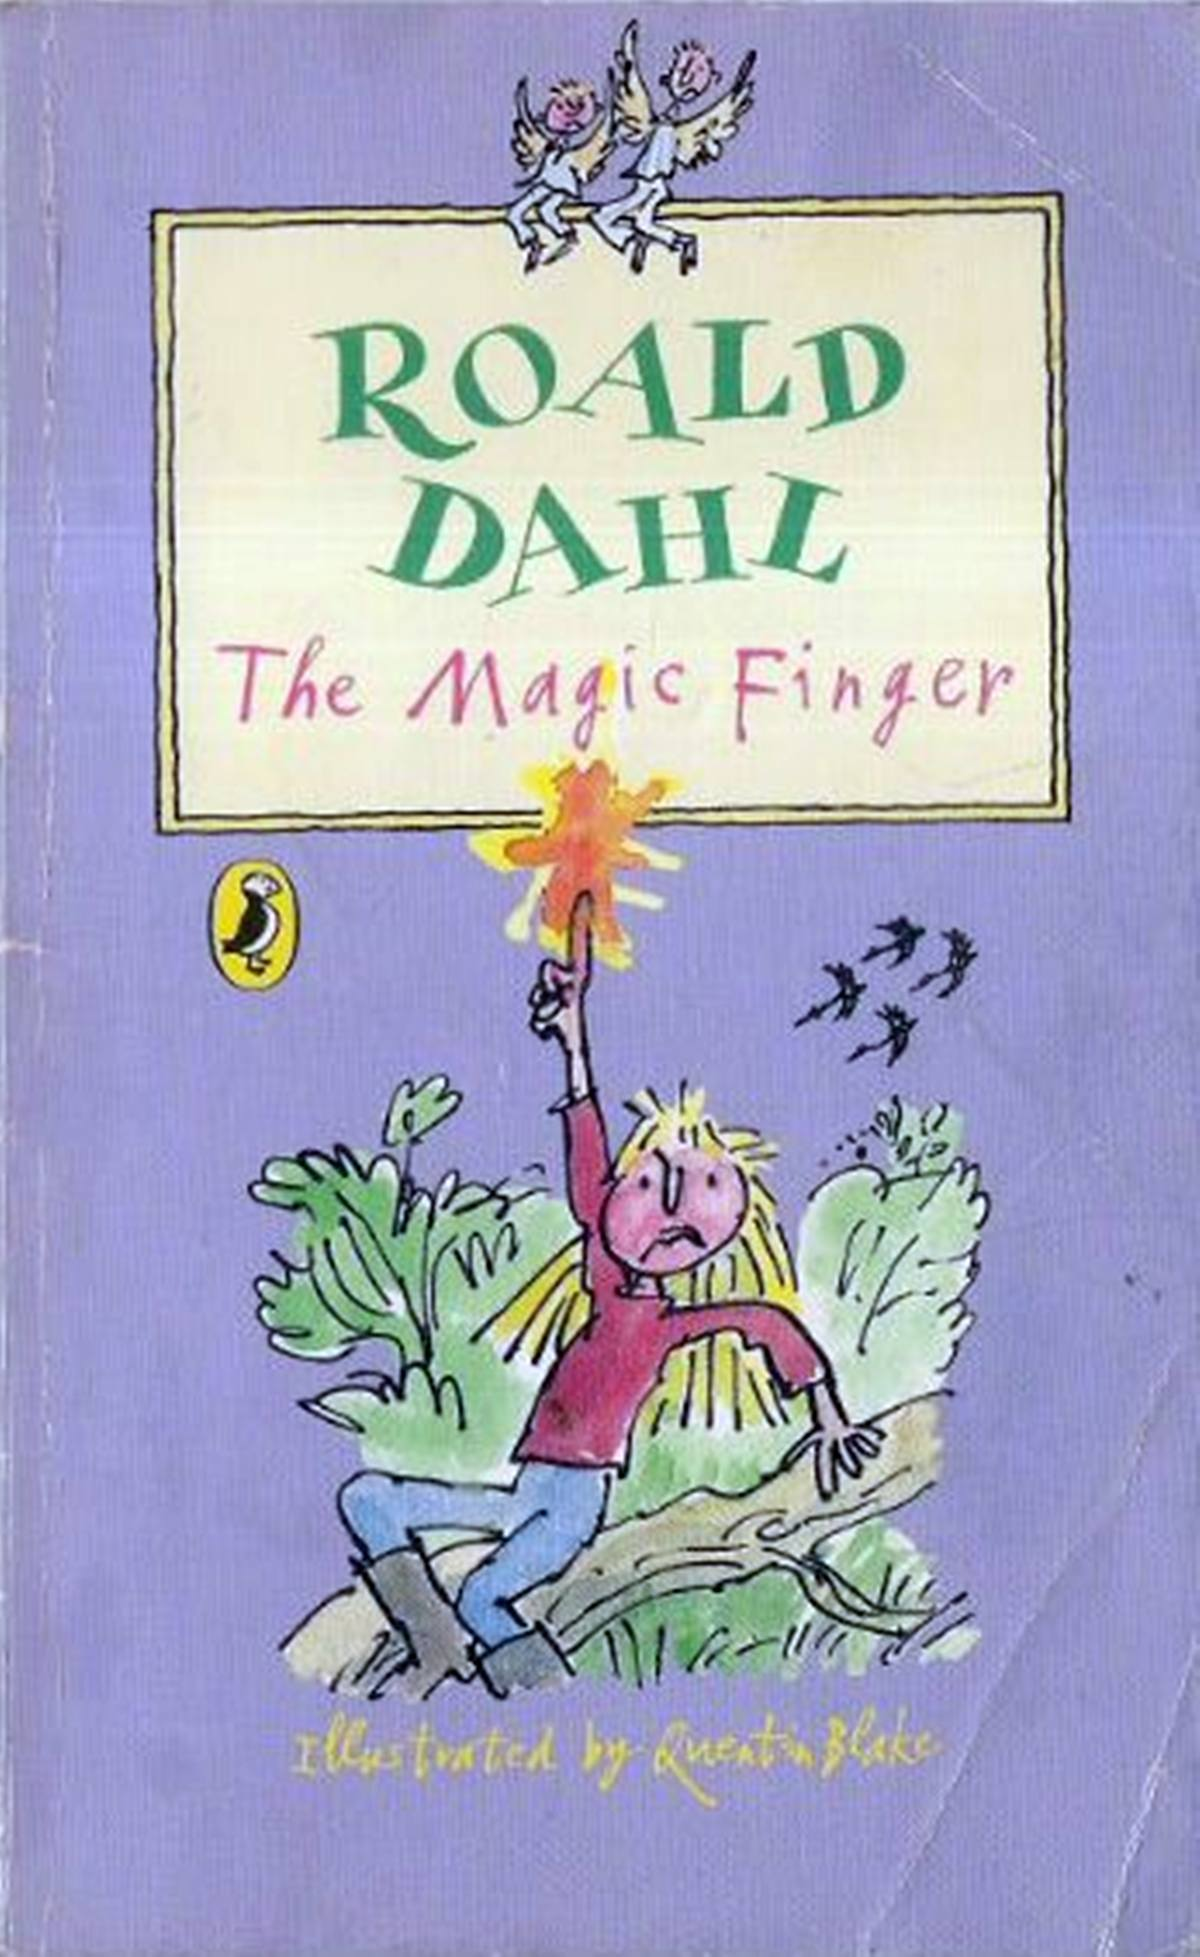 5 18 12 More Childhood Books You've Probably Forgotten About